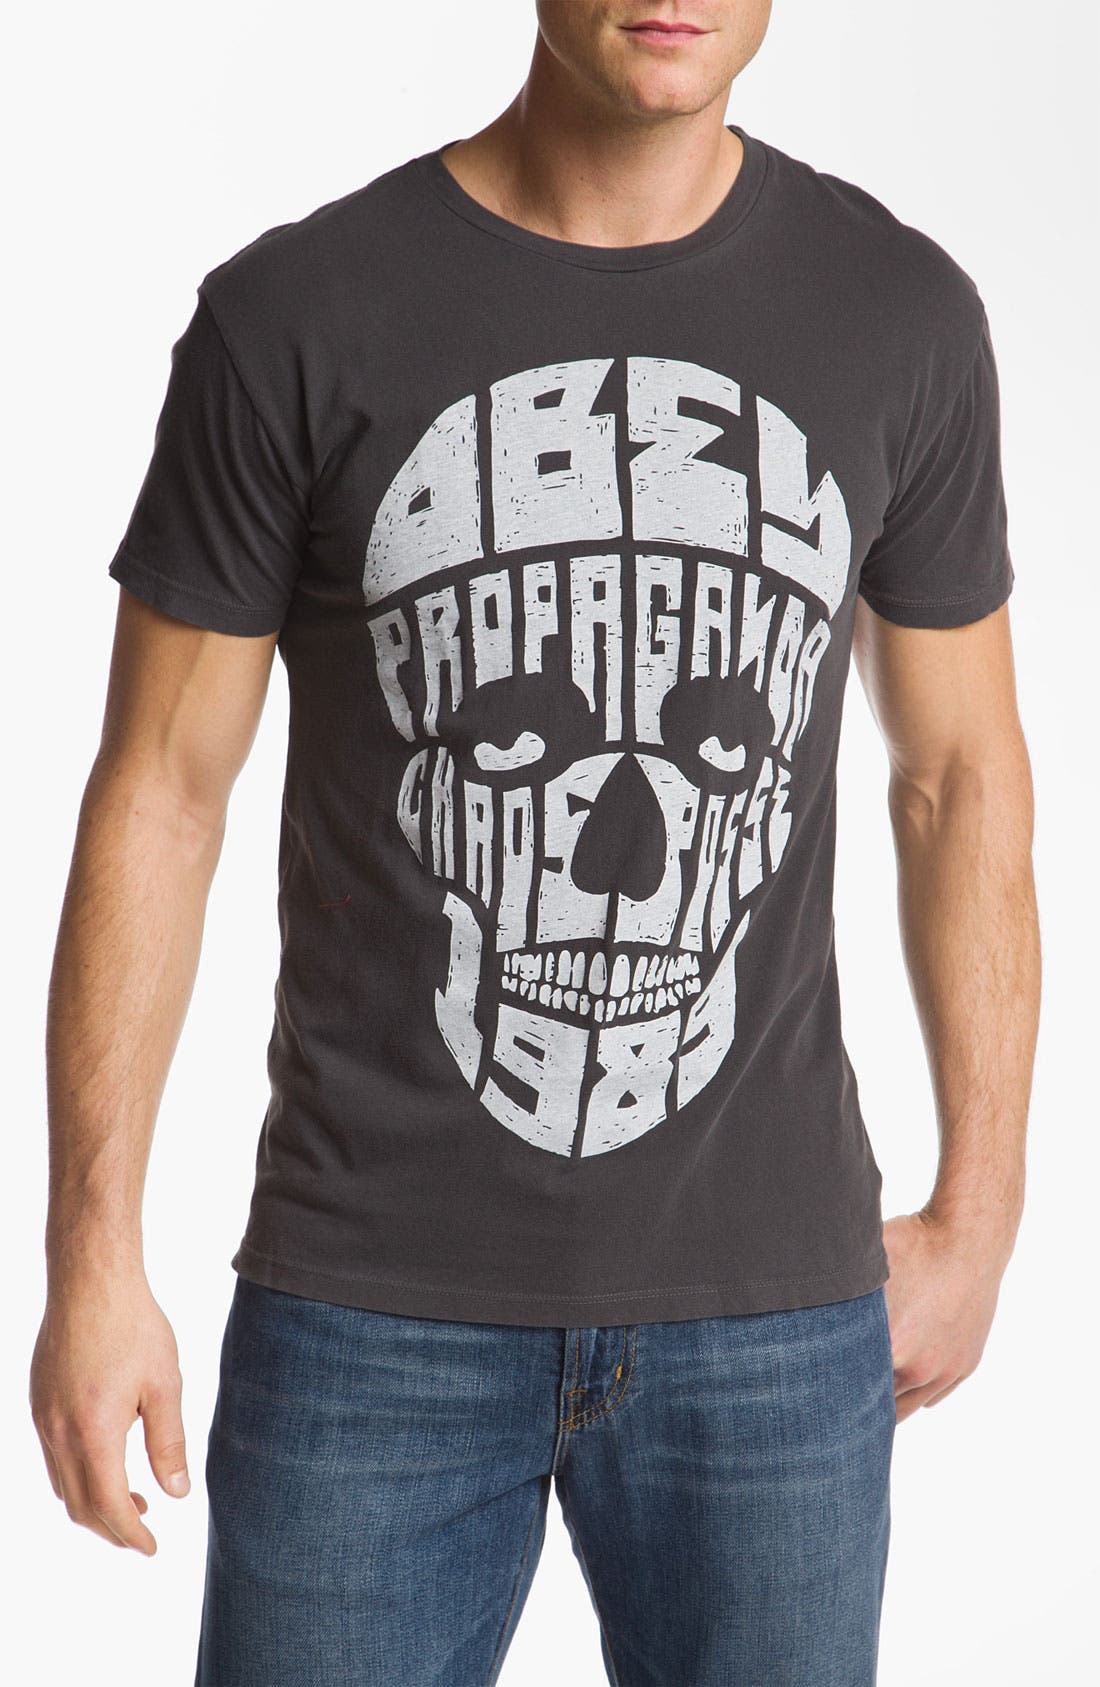 Alternate Image 1 Selected - Obey 'Chaos Posse' Graphic T-Shirt